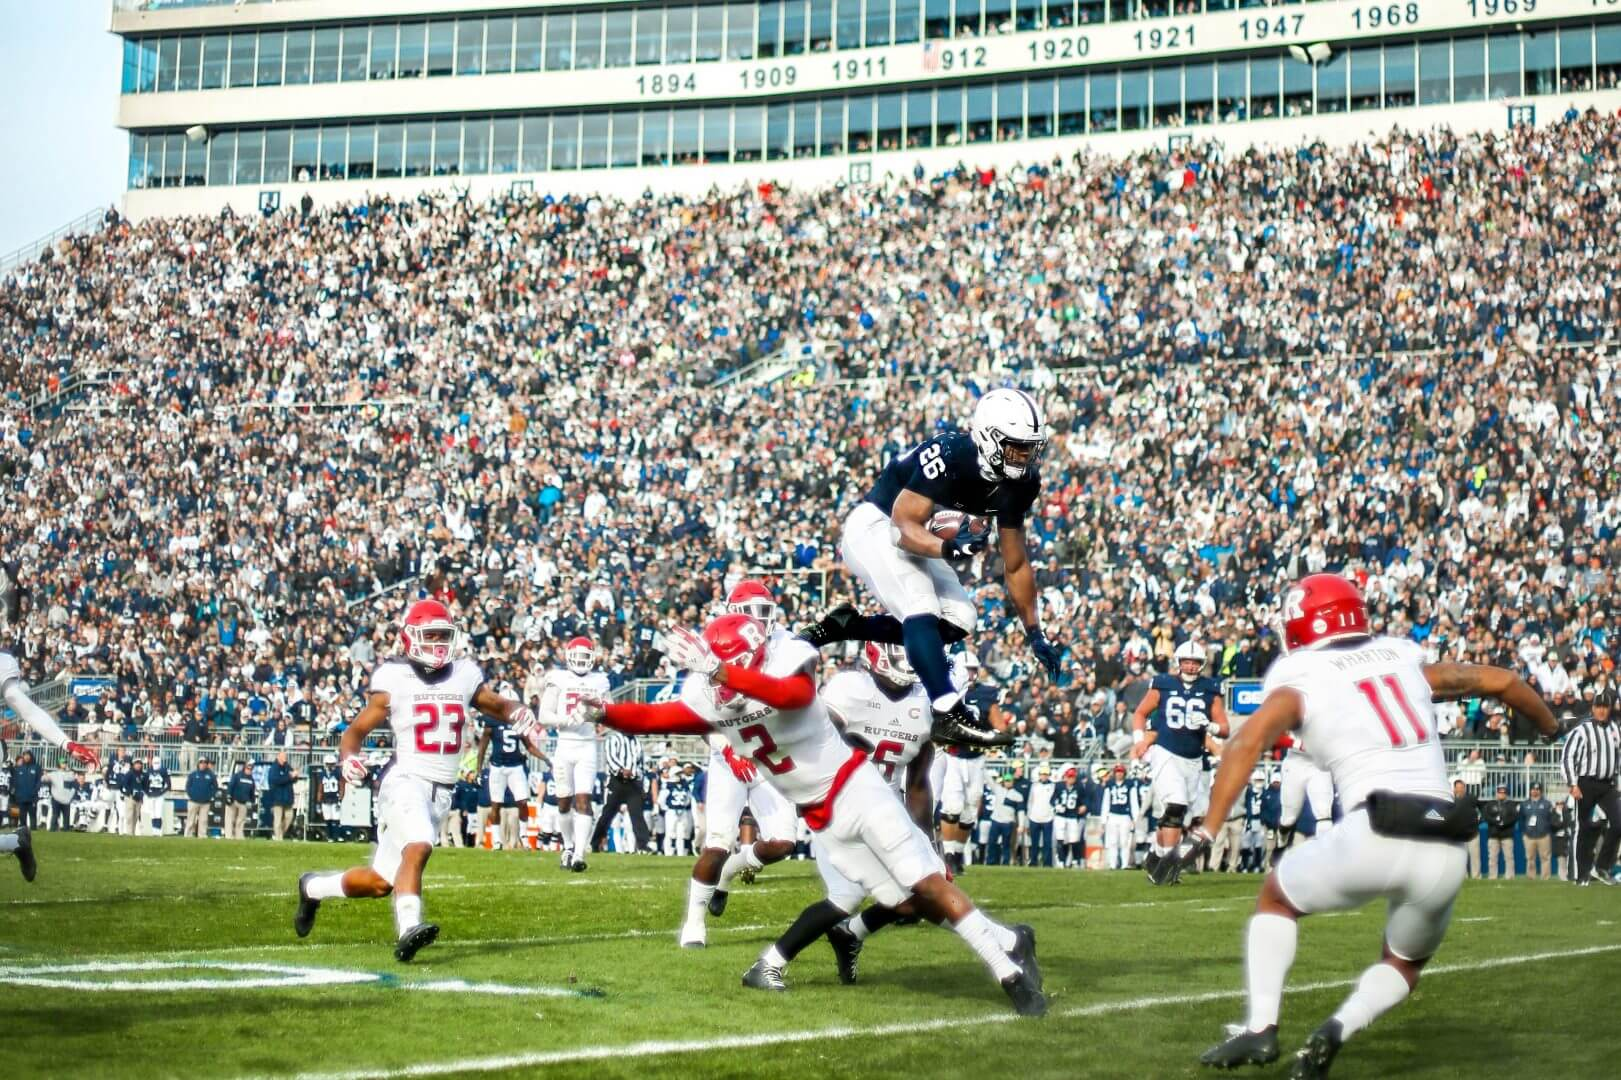 cropped Football events penn state homecoming